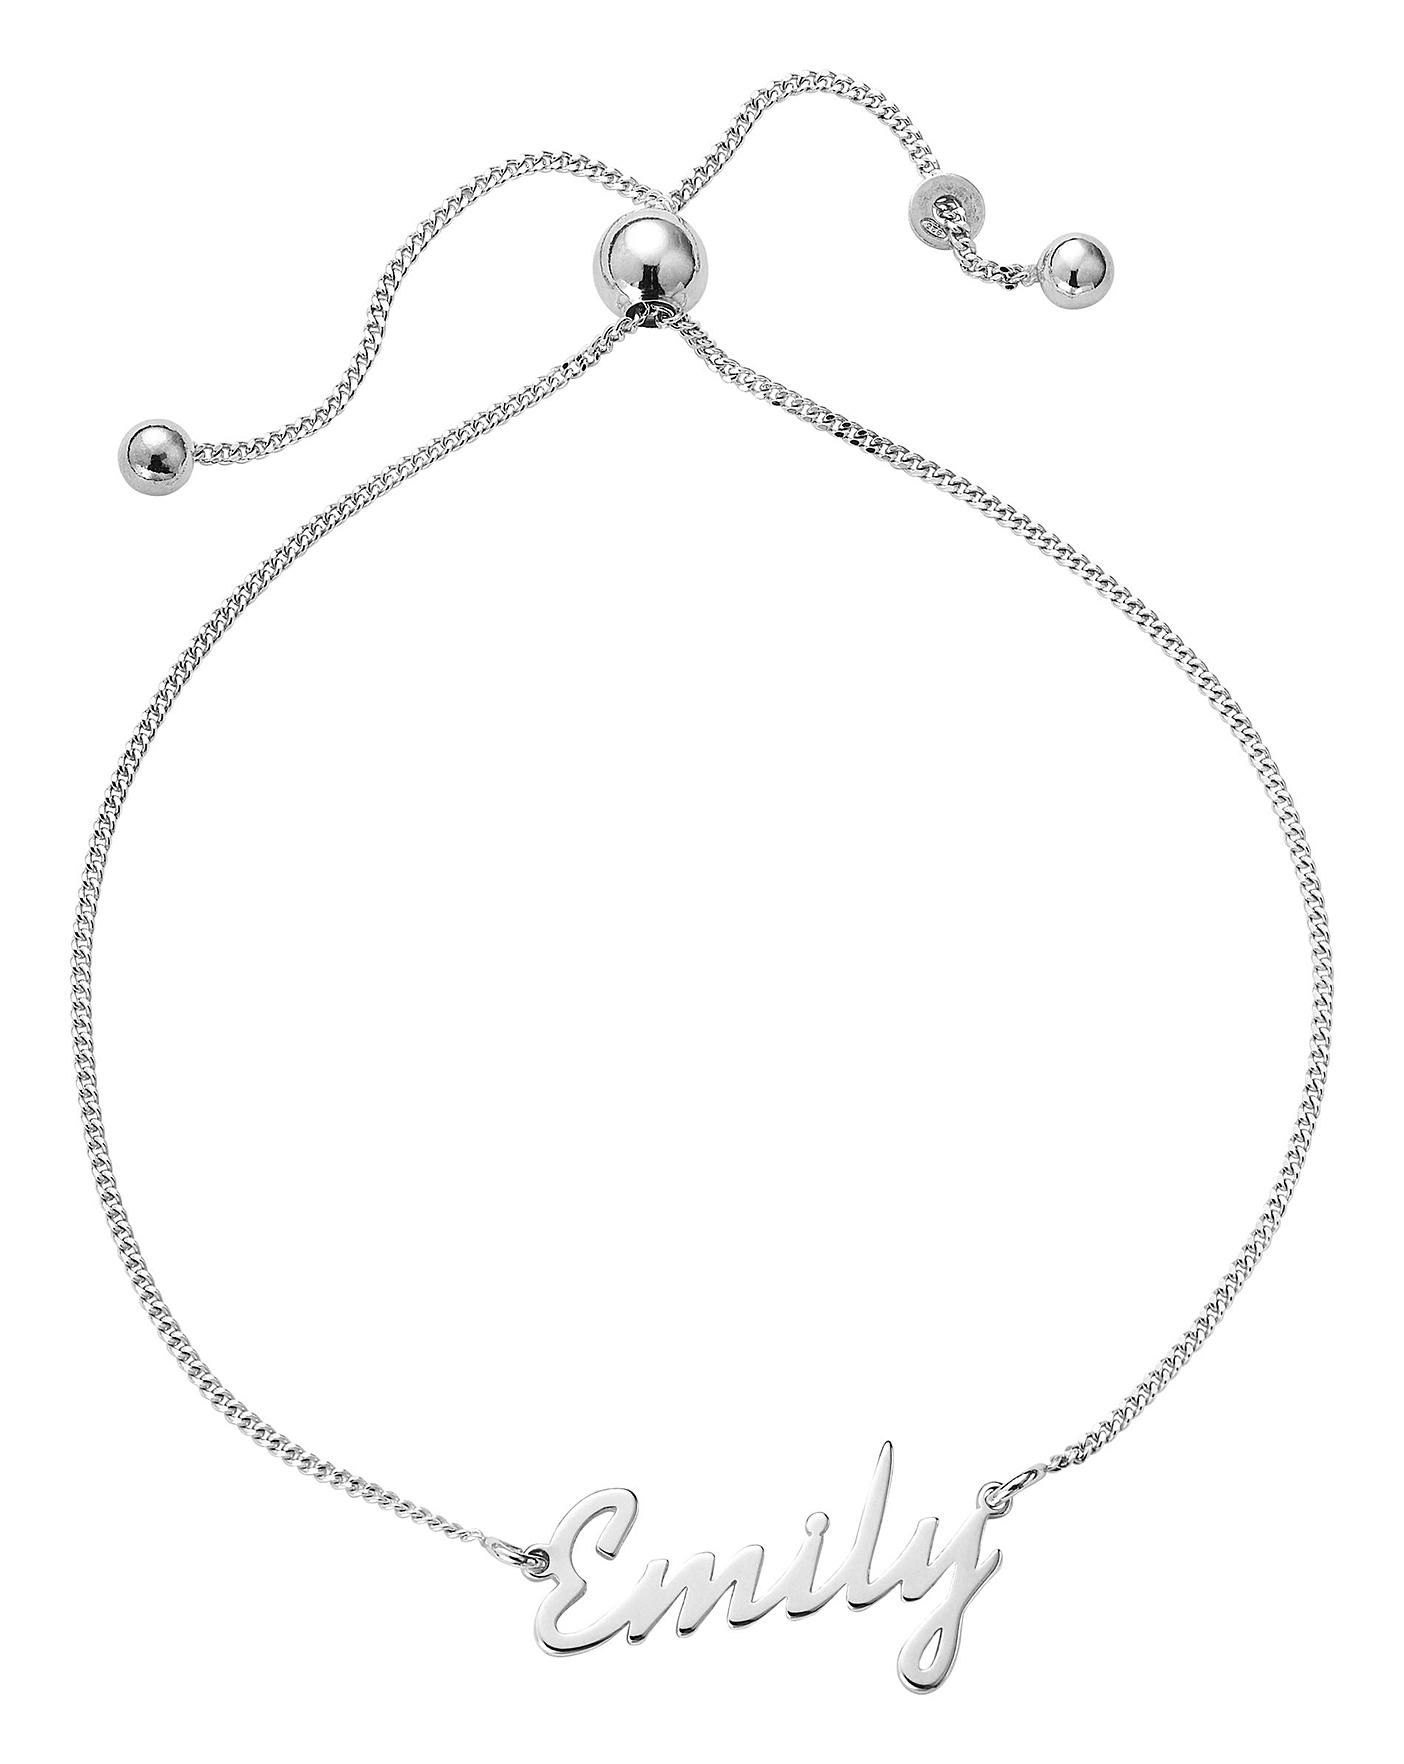 ec4e48fae6afb Sterling Silver Personalised Bracelet